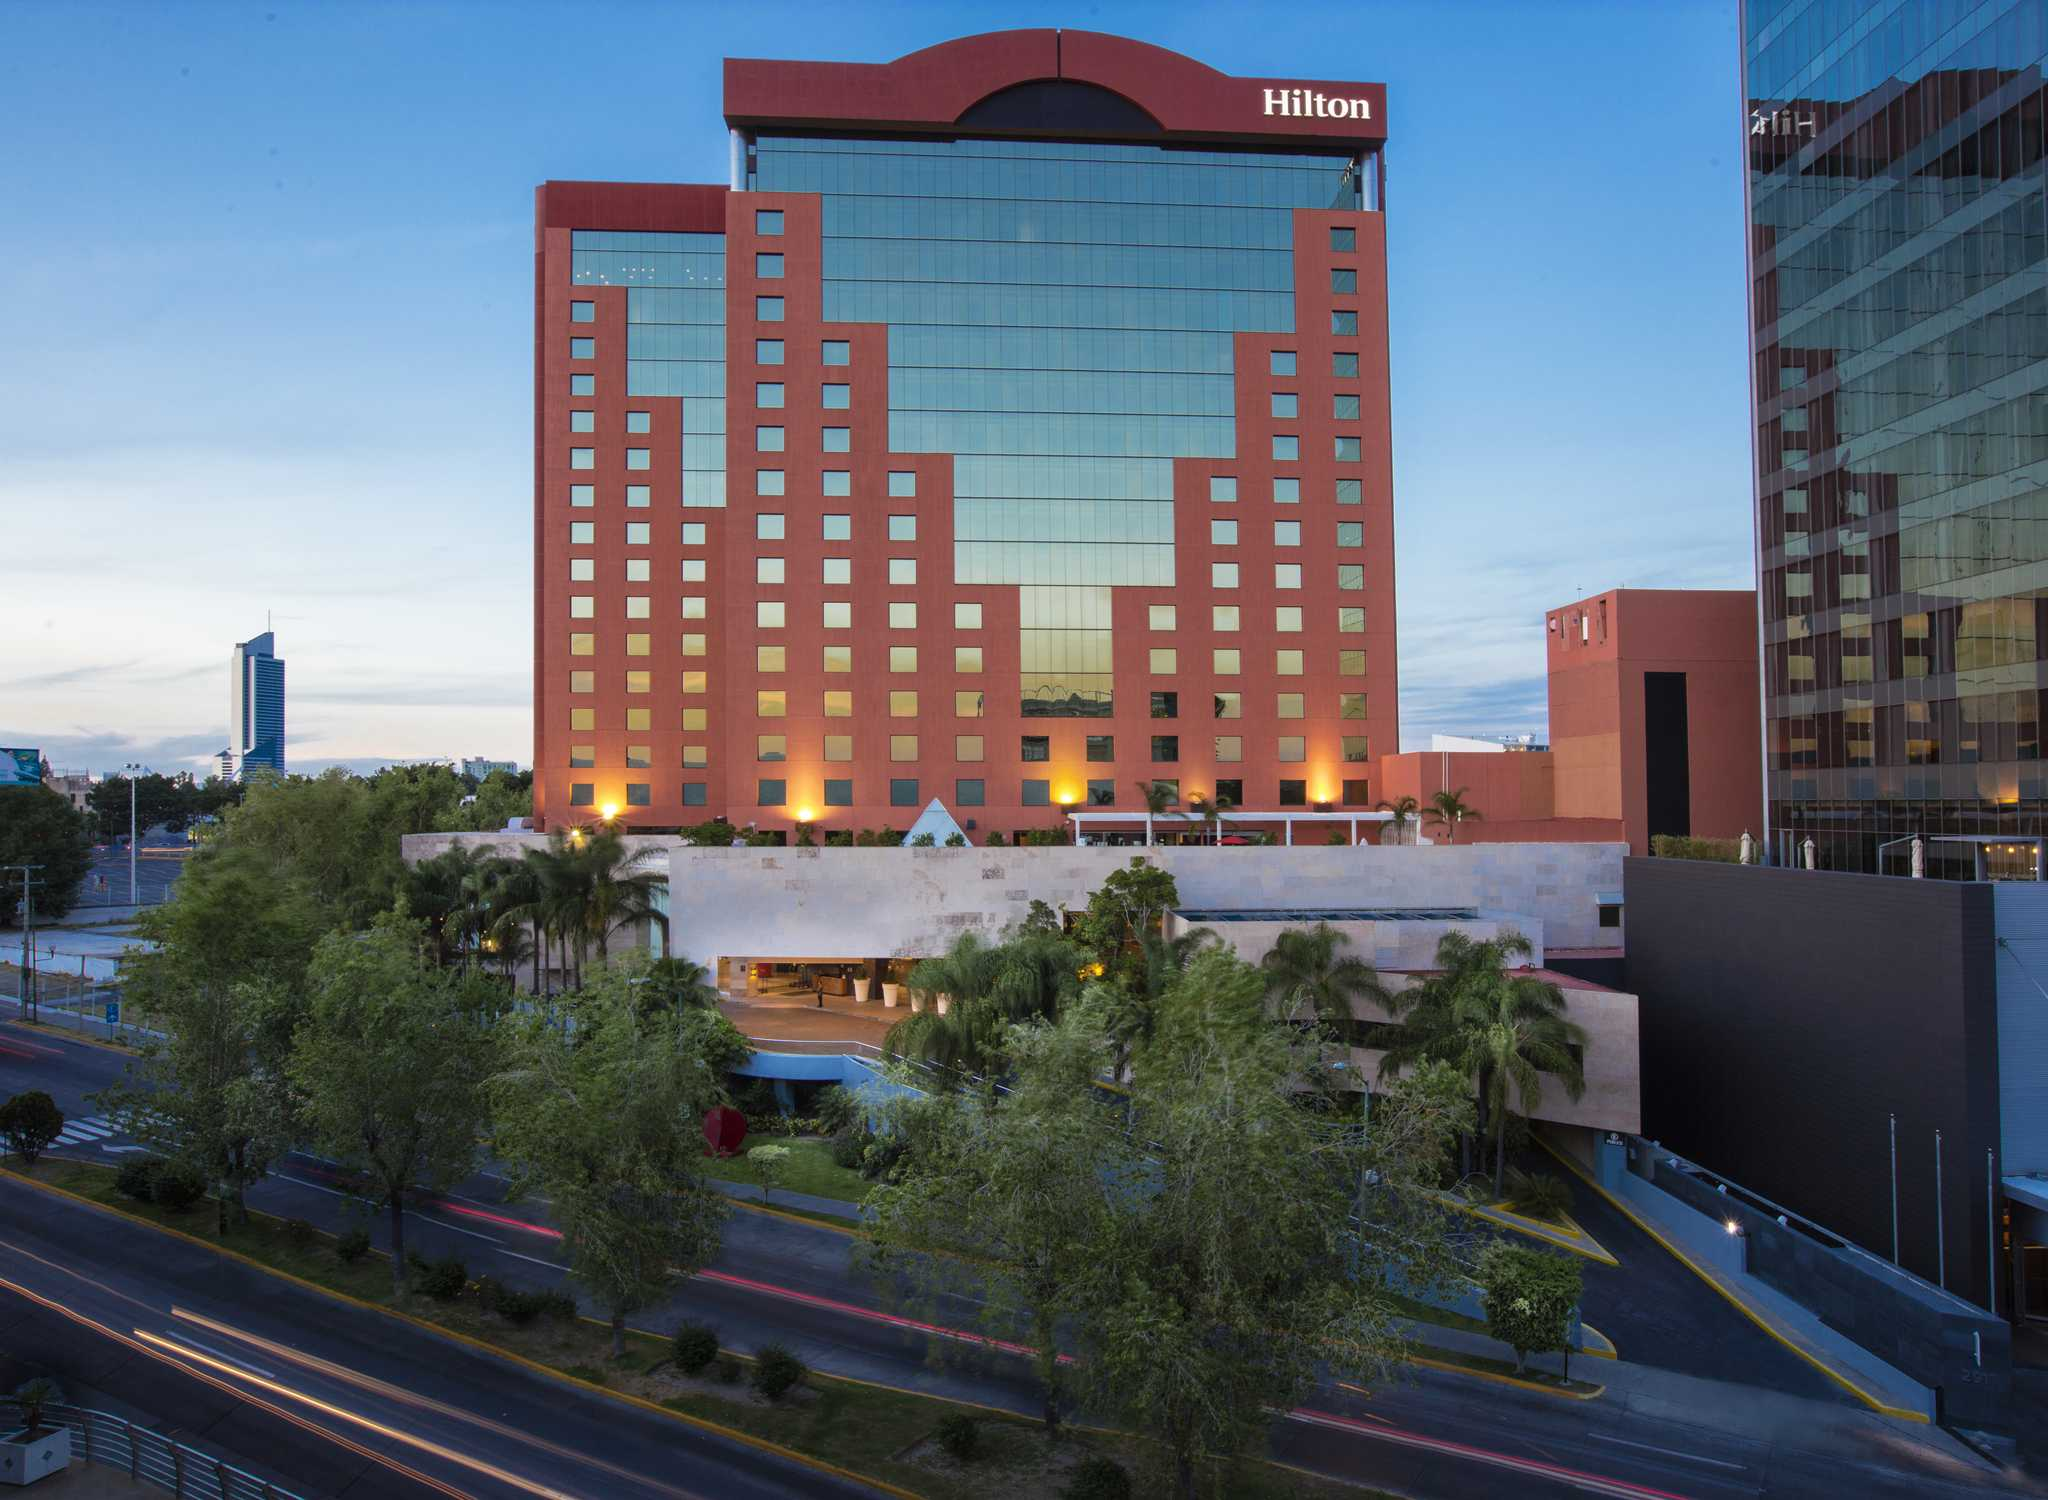 hilton worldwide Hilton worldwide history conrad hilton founded the company when he opened the mobley hotel in cisco, texas in 1919 he bought several more hotels in the years following.